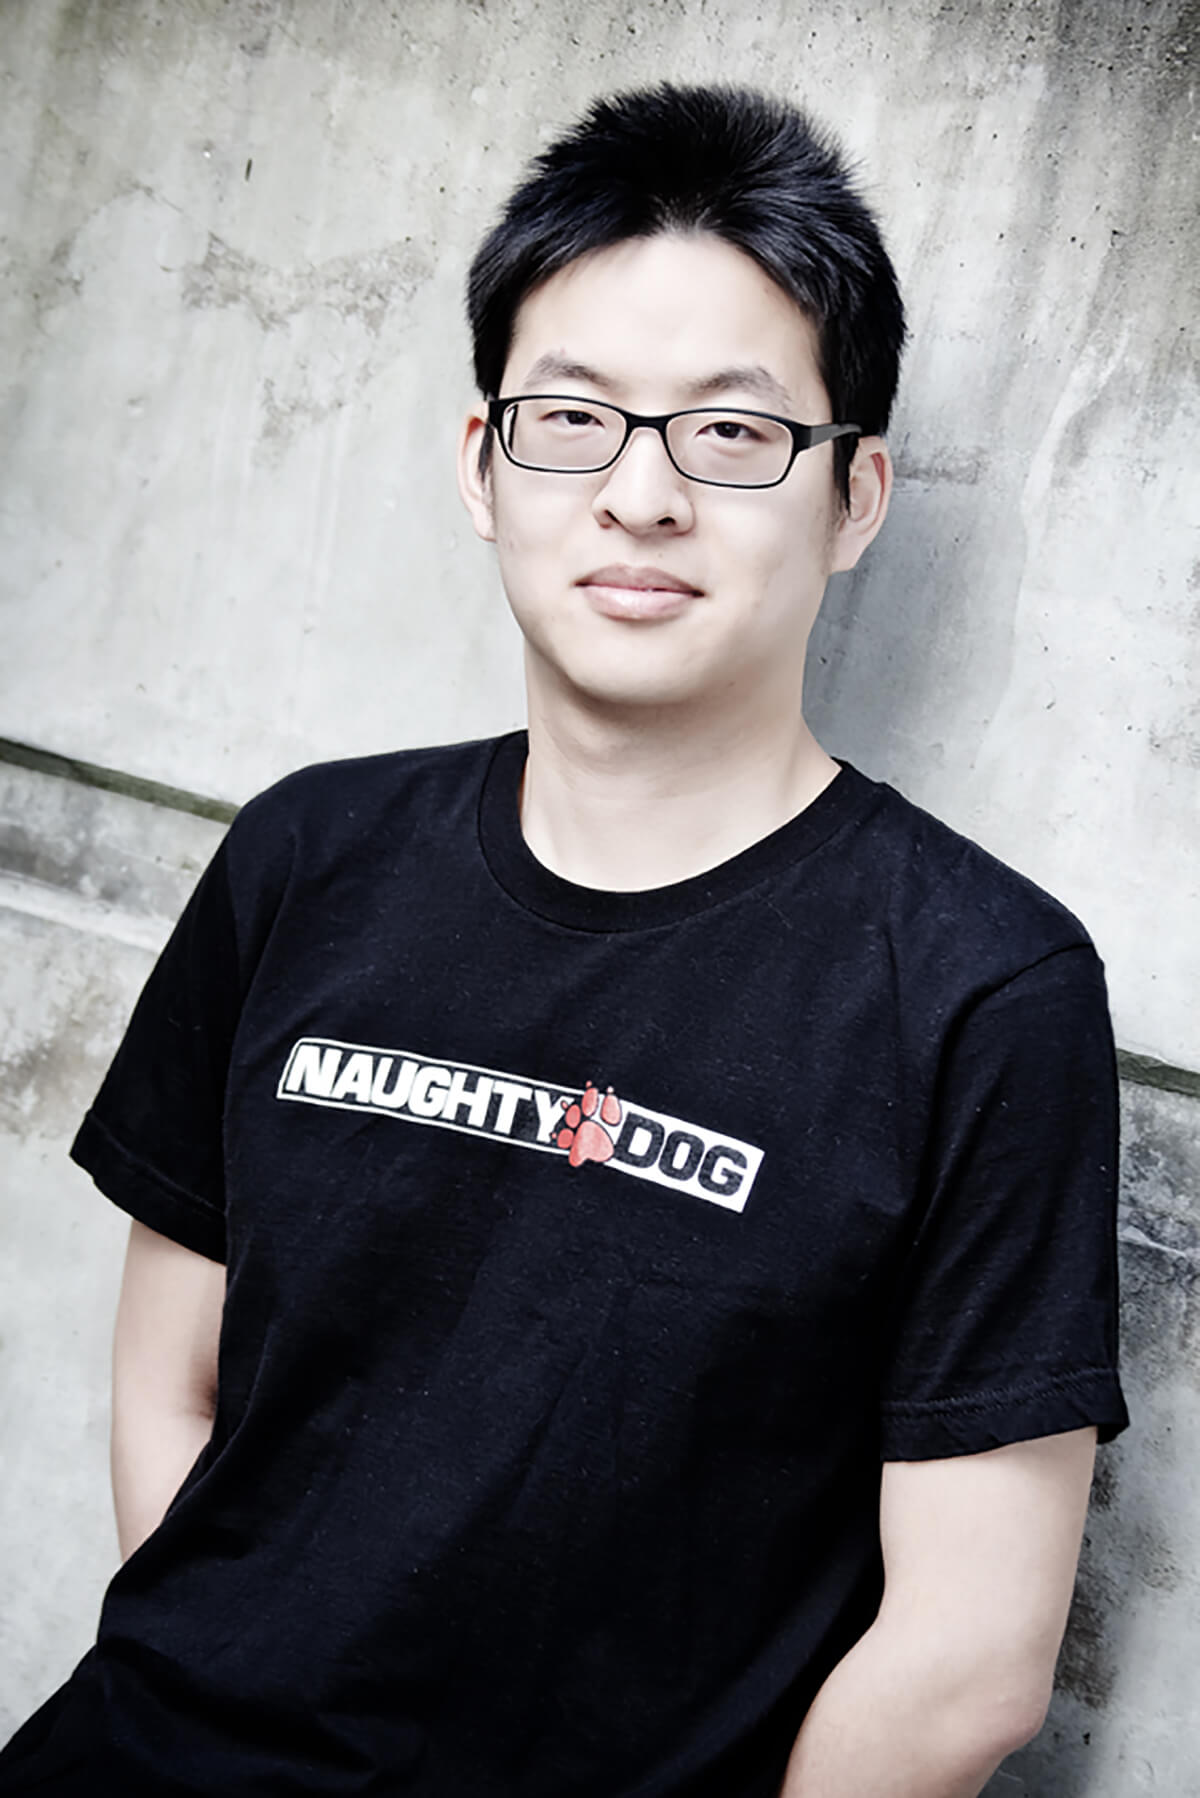 Ming-Lun Allen Chou in a Naughty Dog t-shirt